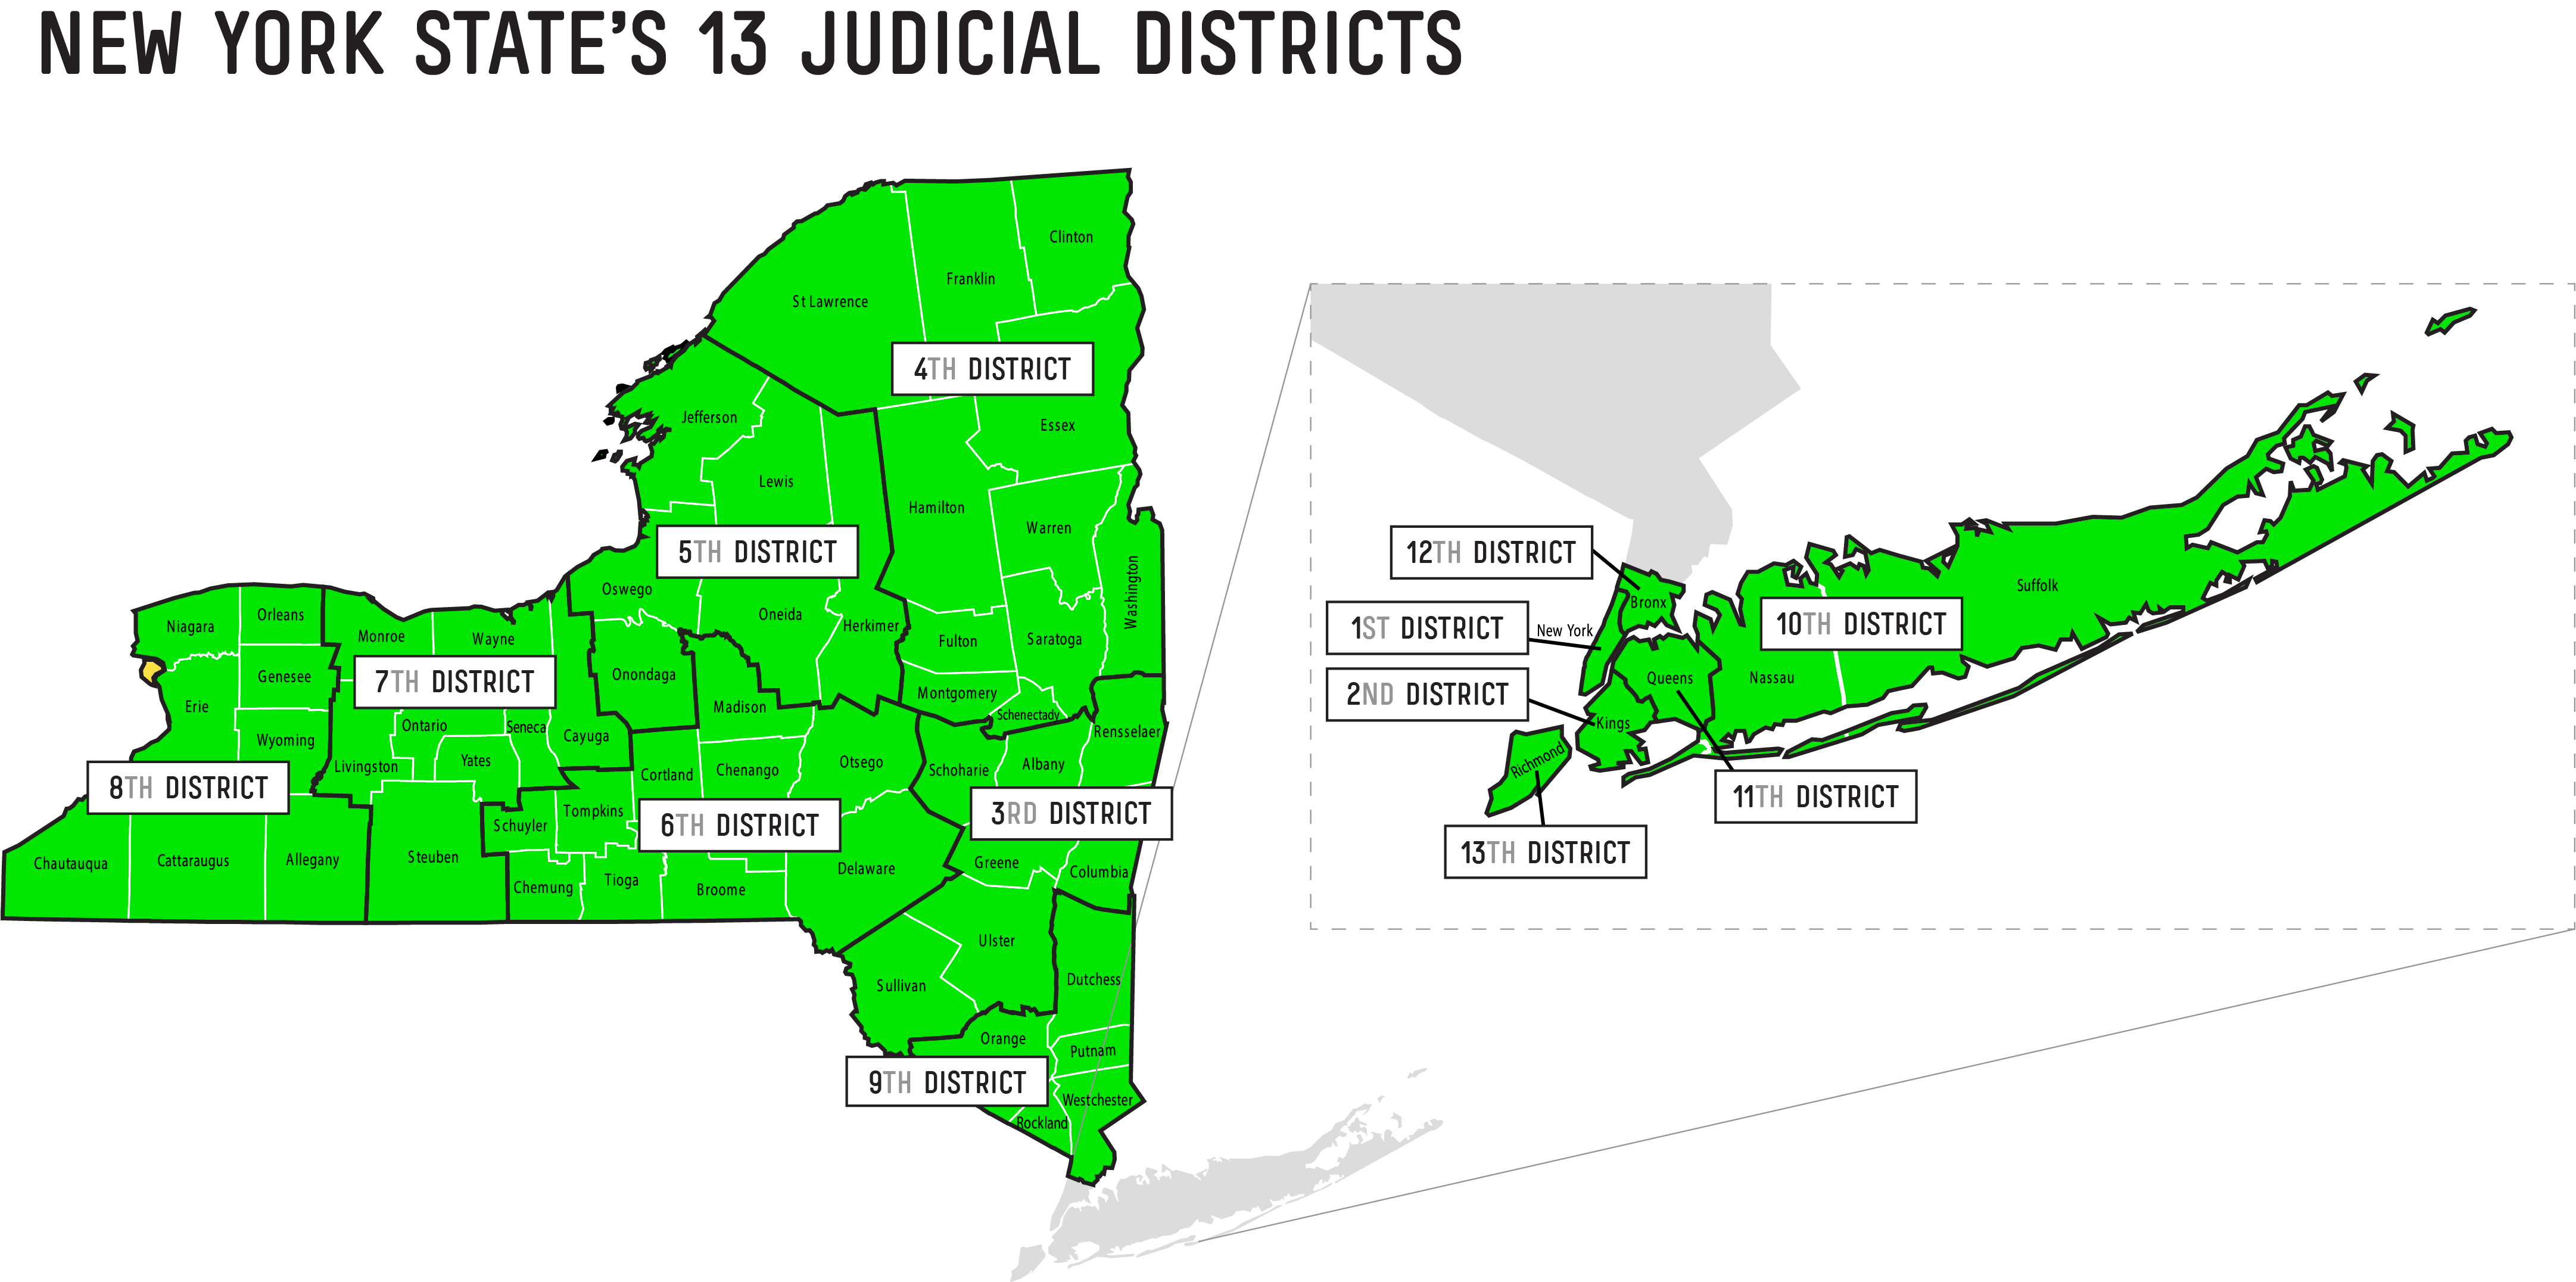 NewYorkState_CourtDistricts_May26_G964796920